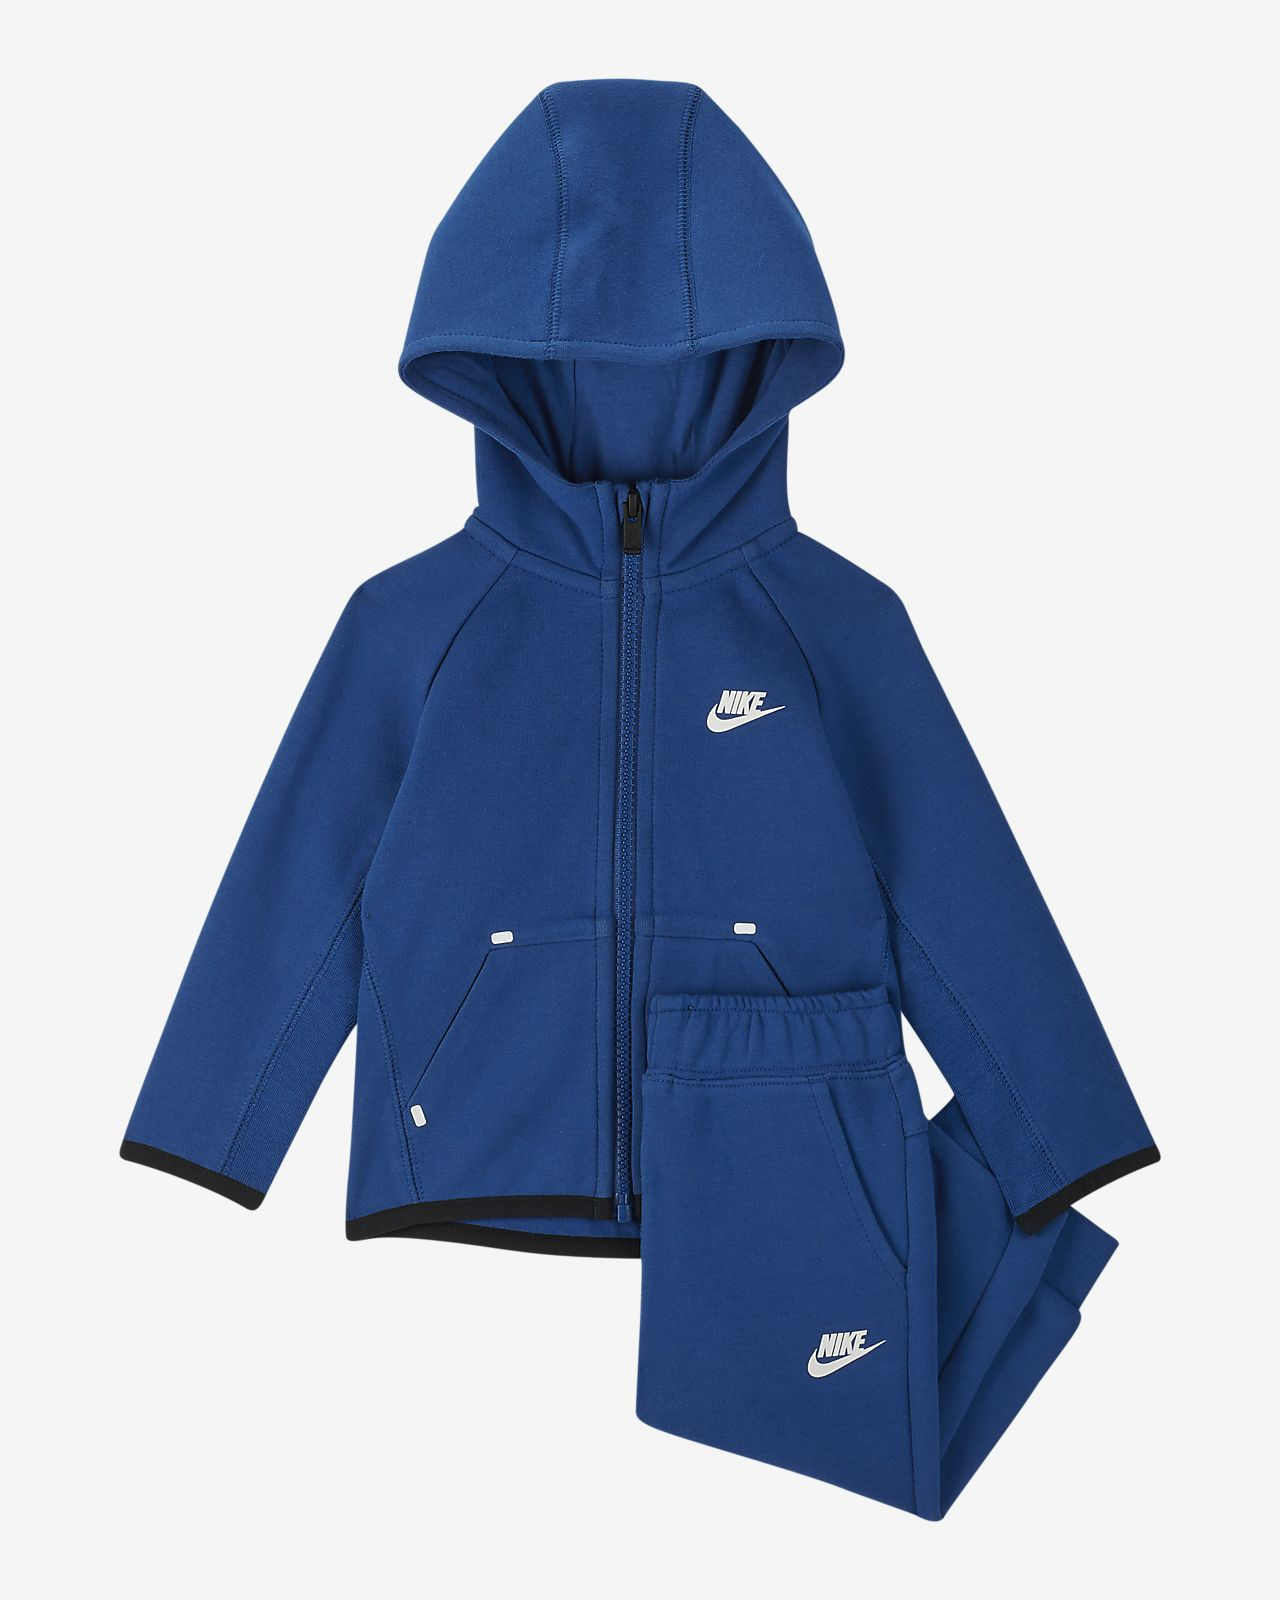 temperament shoes release date detailing Ensemble sweat à capuche et pantalon de jogging Nike Sportswear Tech Fleece  pour Bébé (12 - 24 mois)